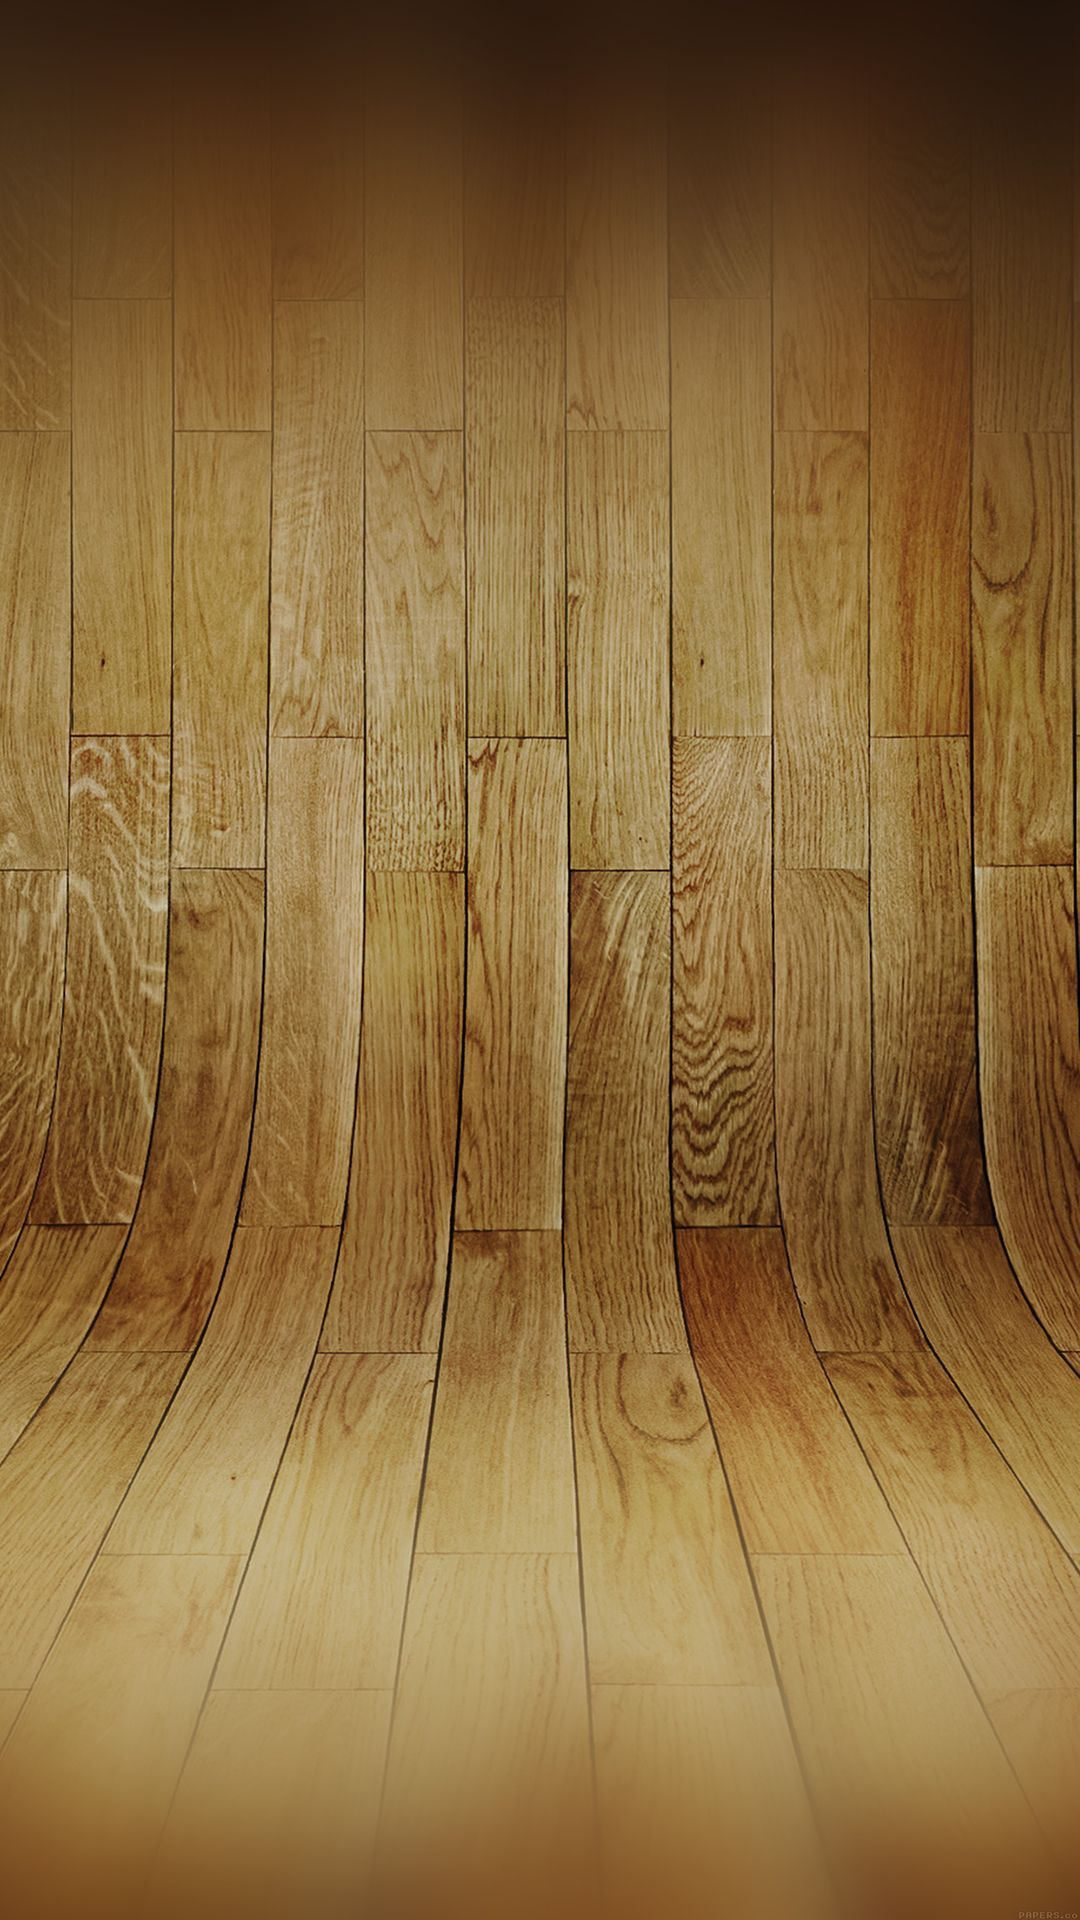 1080x1920 Curved 3D Wood Planks Texture #iPhone #6 #plus #wallpaper ...